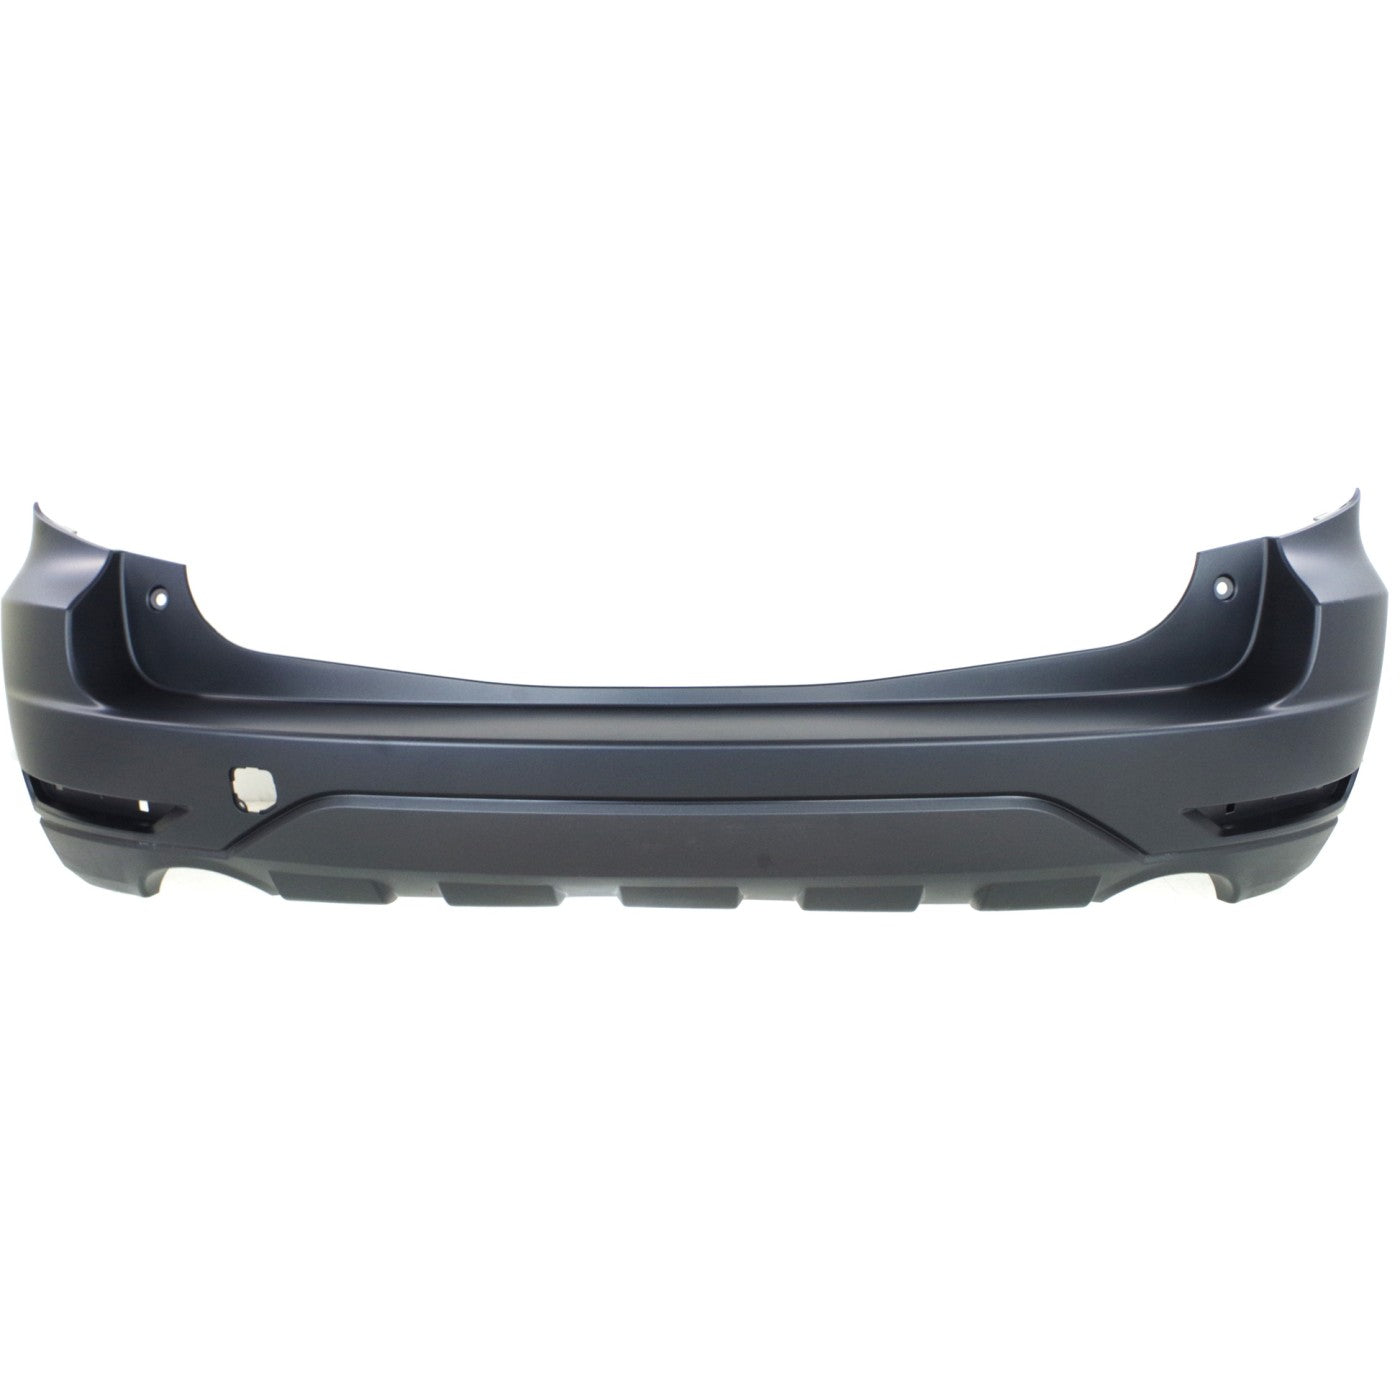 2009-2013 Subaru Forester Rear Bumper